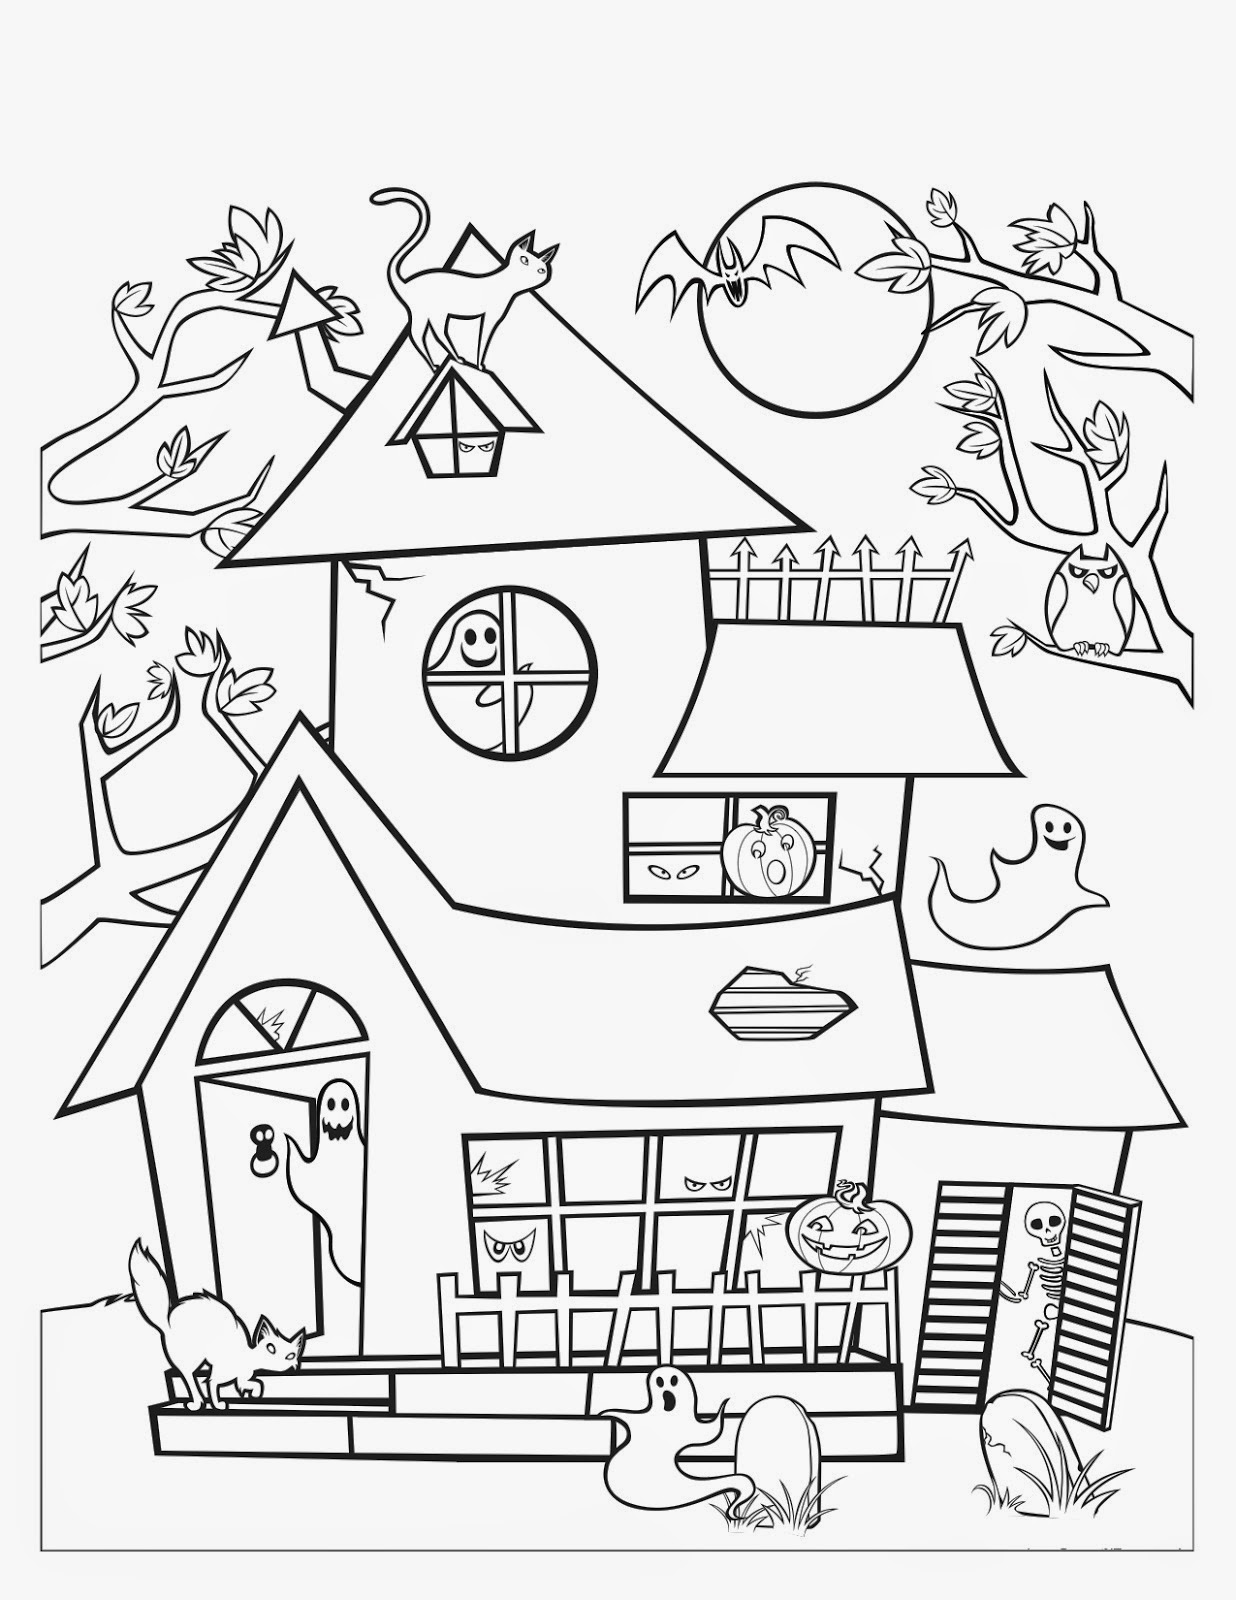 Coloring Page Printable 1236x1600 House Drawing Colour Free Purifying Well Water Diagram